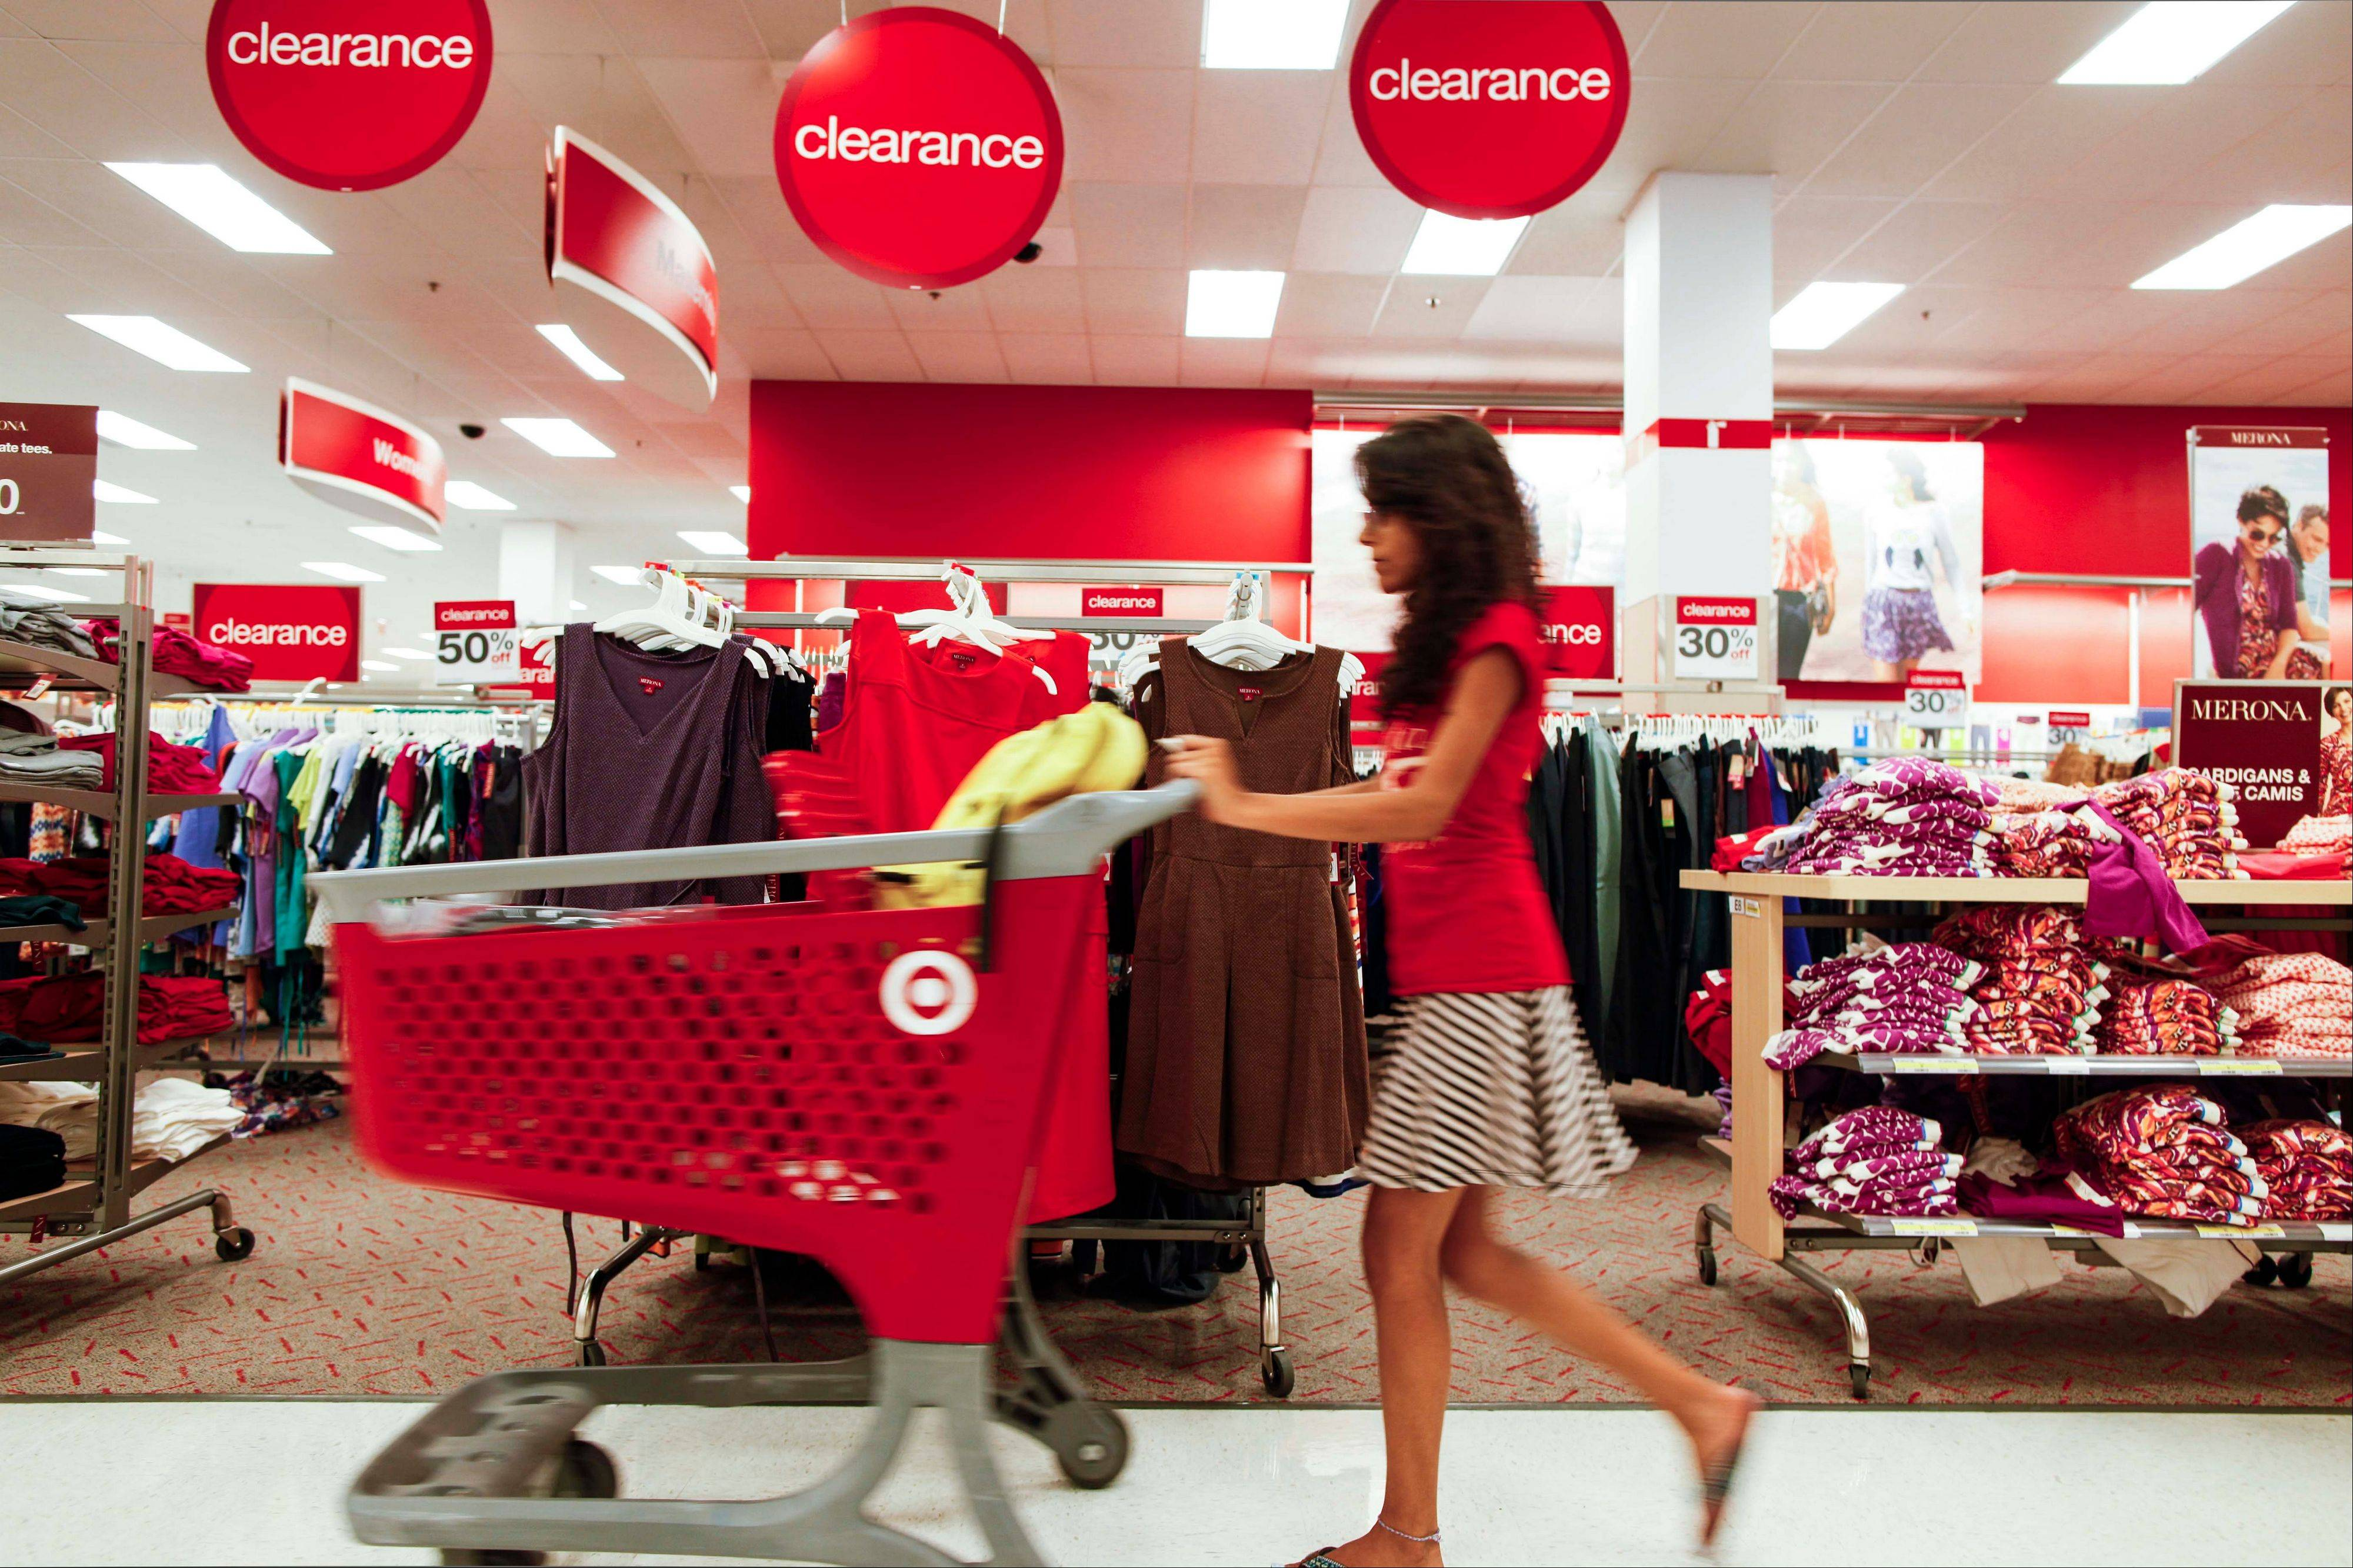 A shopper pushes a trolley through the clearance section of a store in Chicago. During the recession,